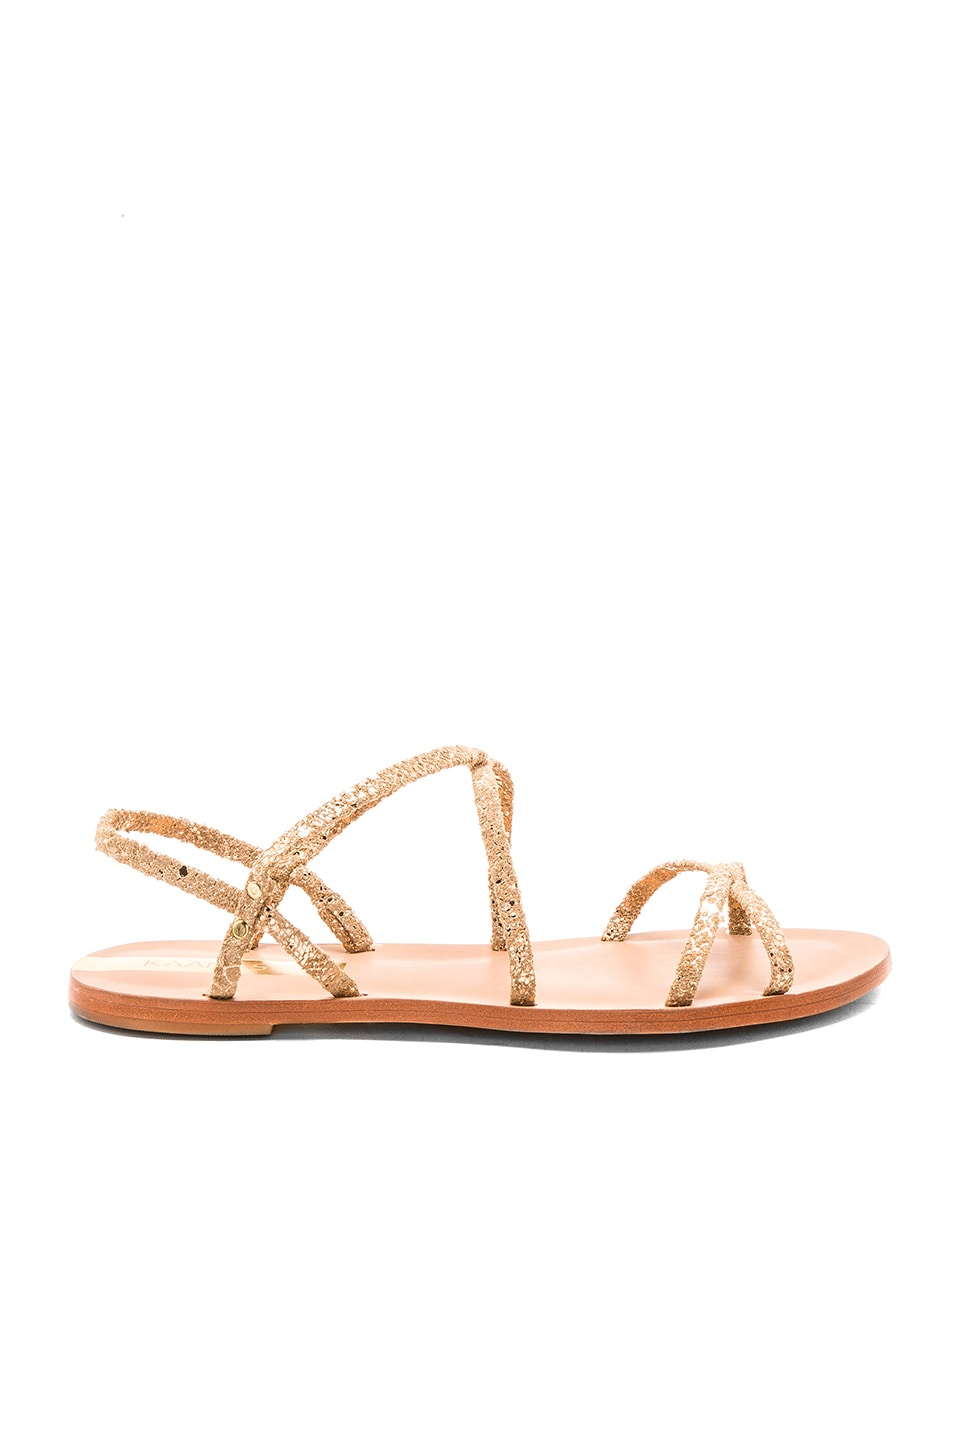 Kaanas Salvador Sandal in Gold